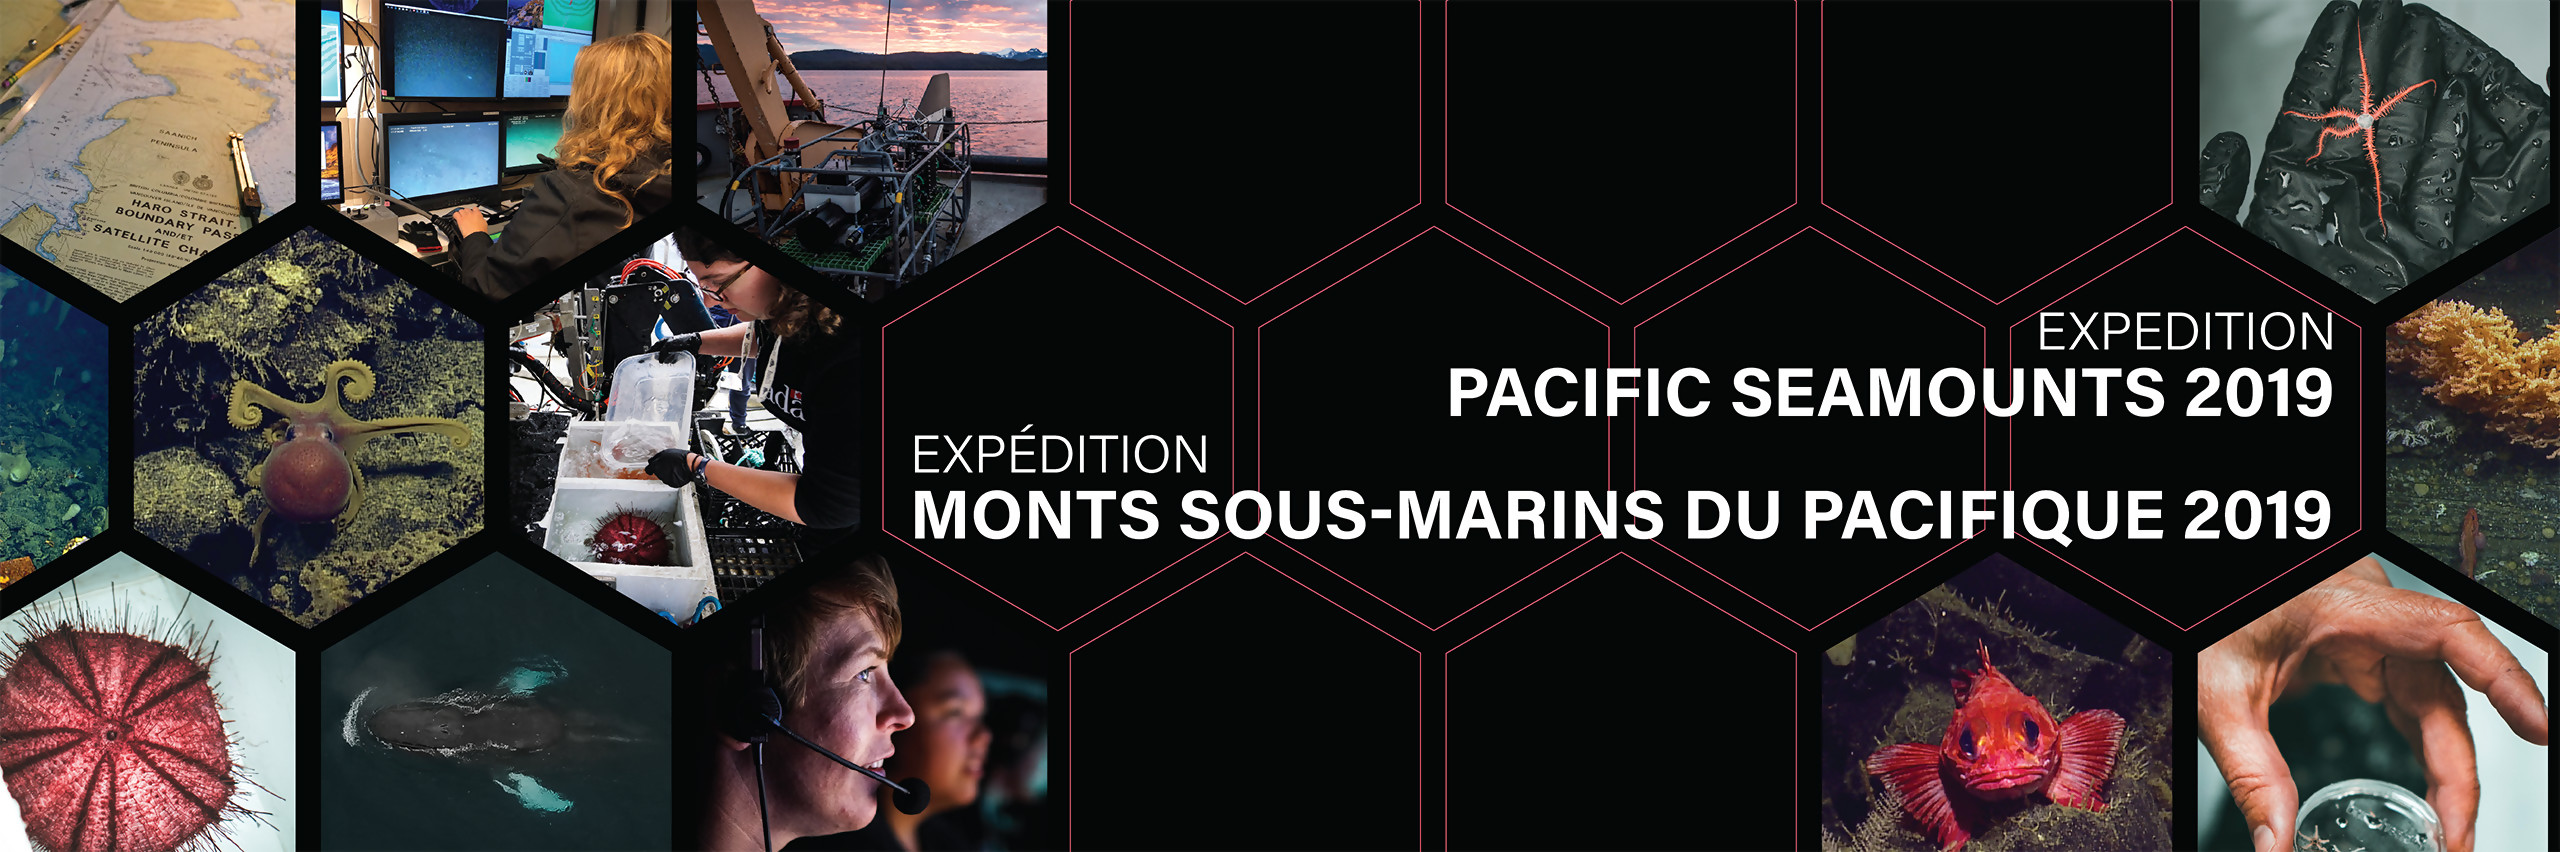 Pacific Seamounts Expedition 2019